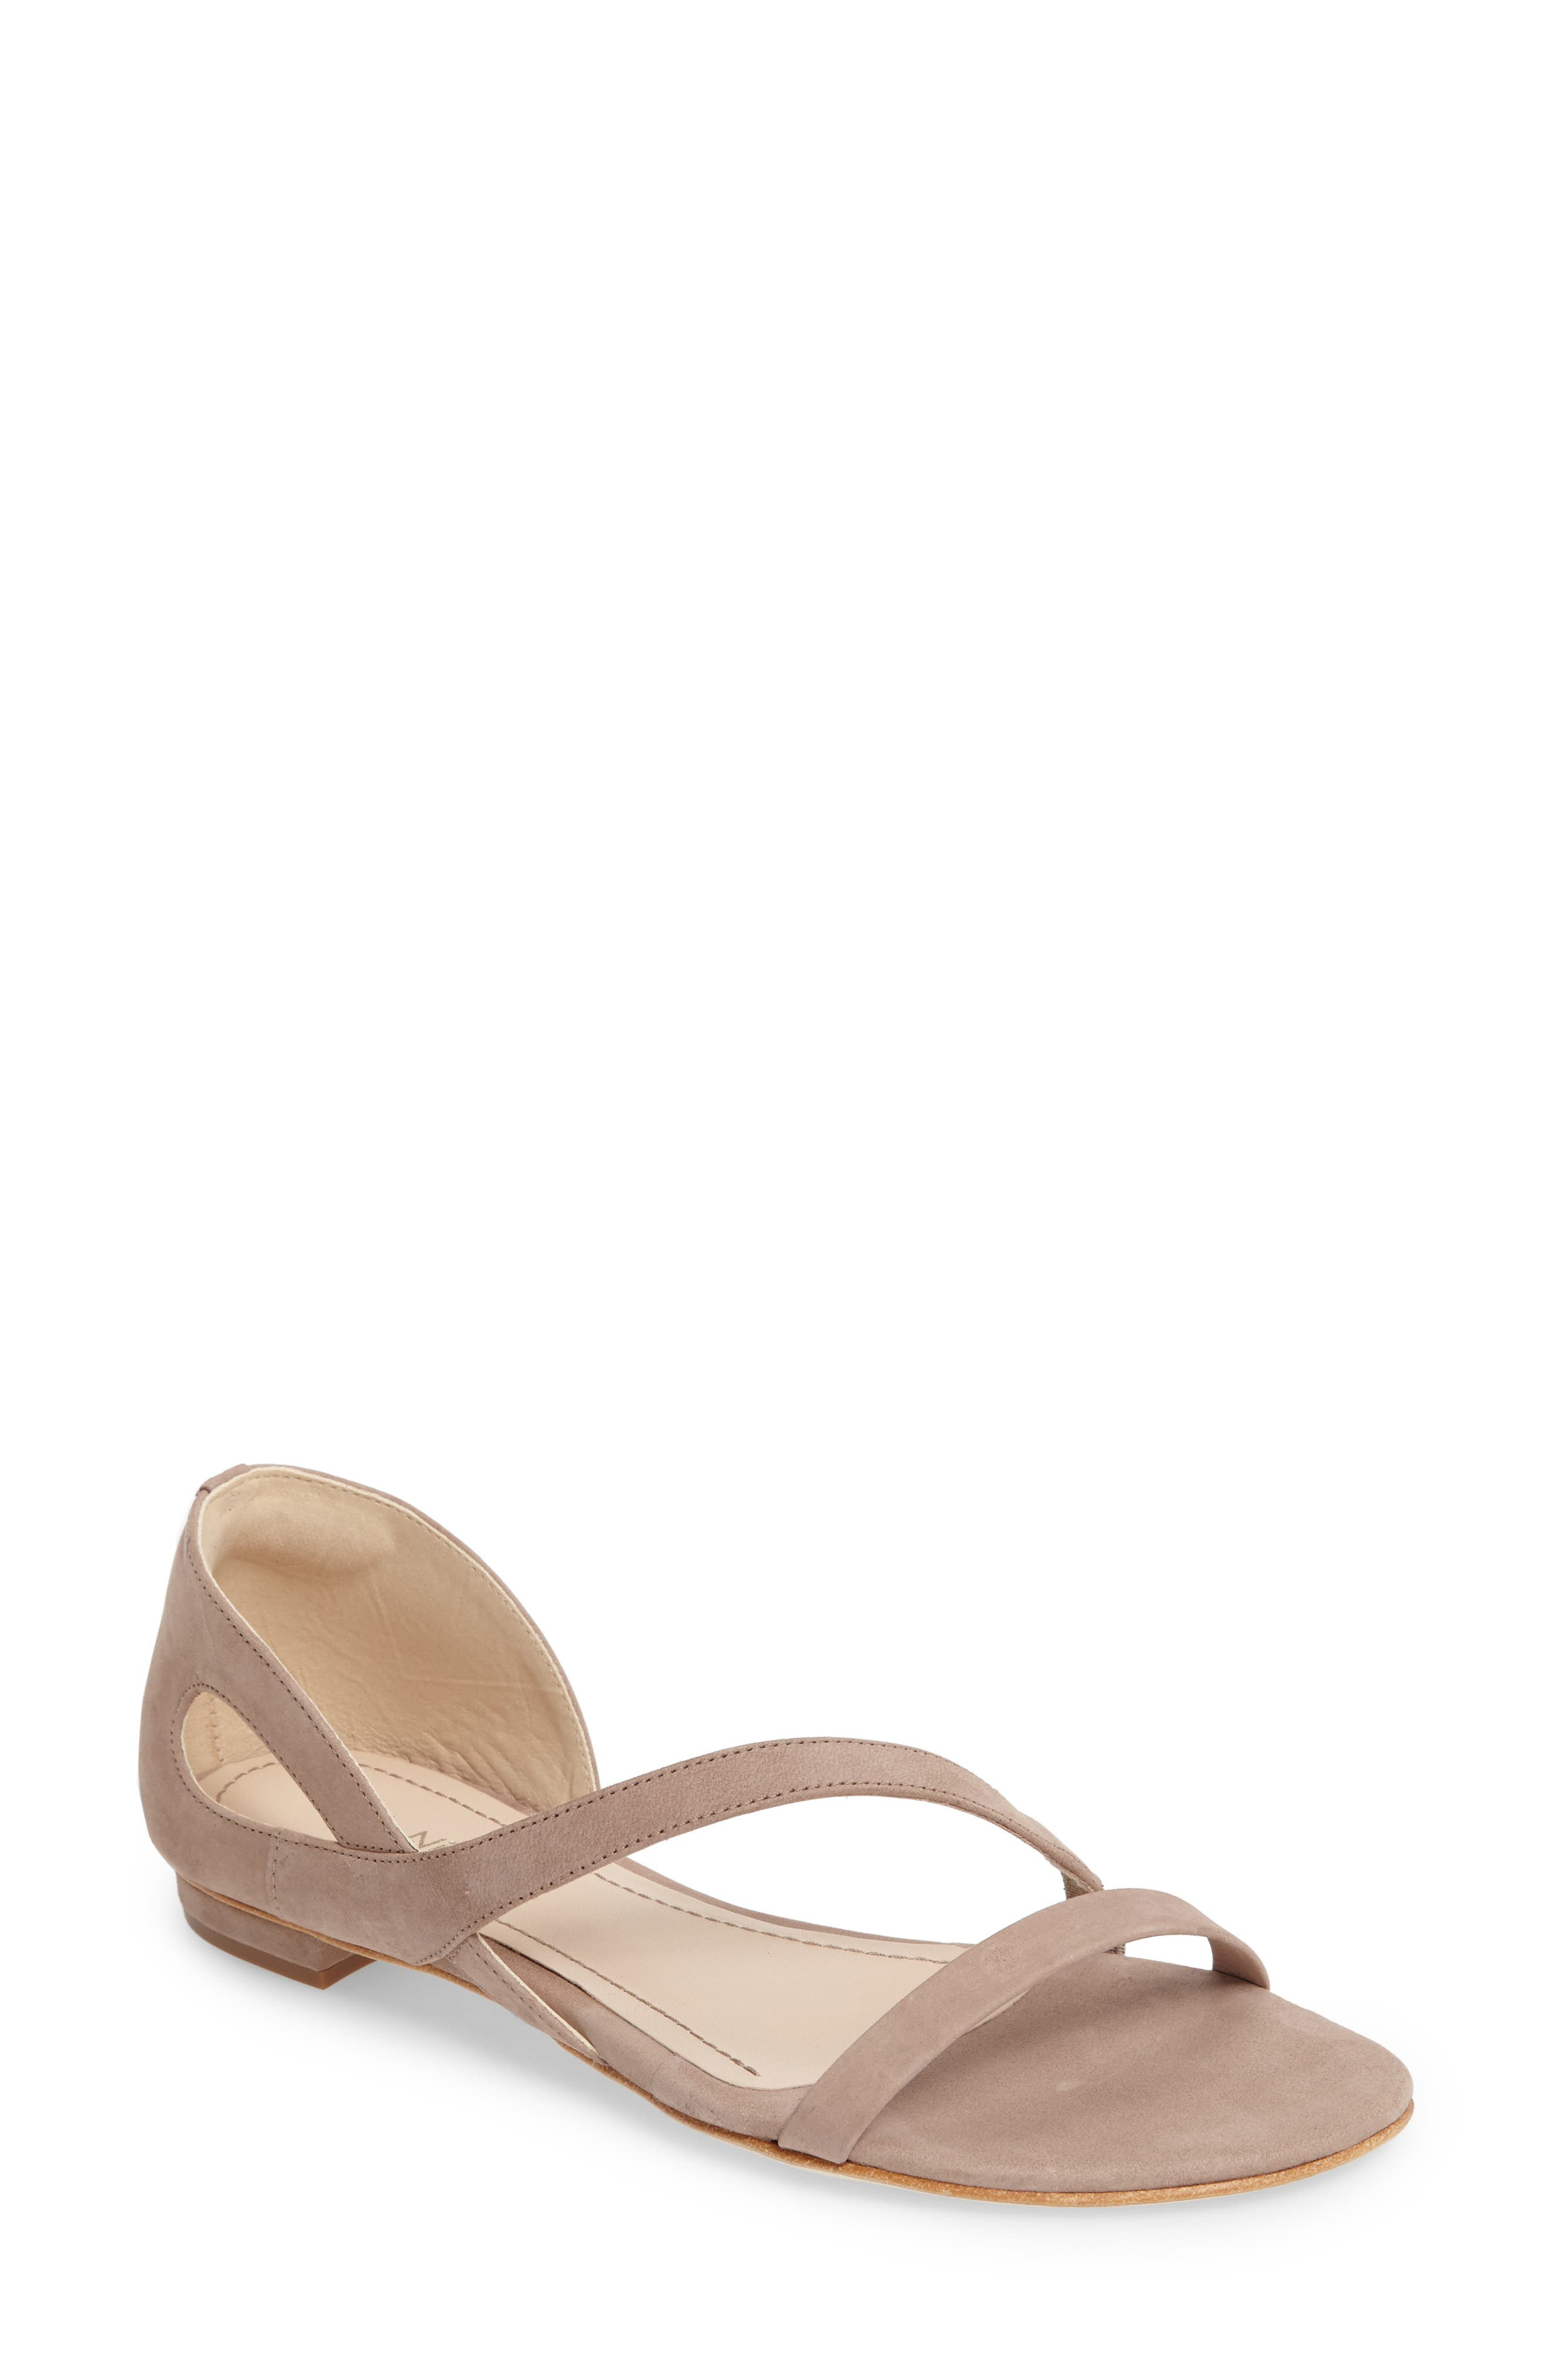 Jeanne Sandal,                             Main thumbnail 1, color,                             Taupe Leather